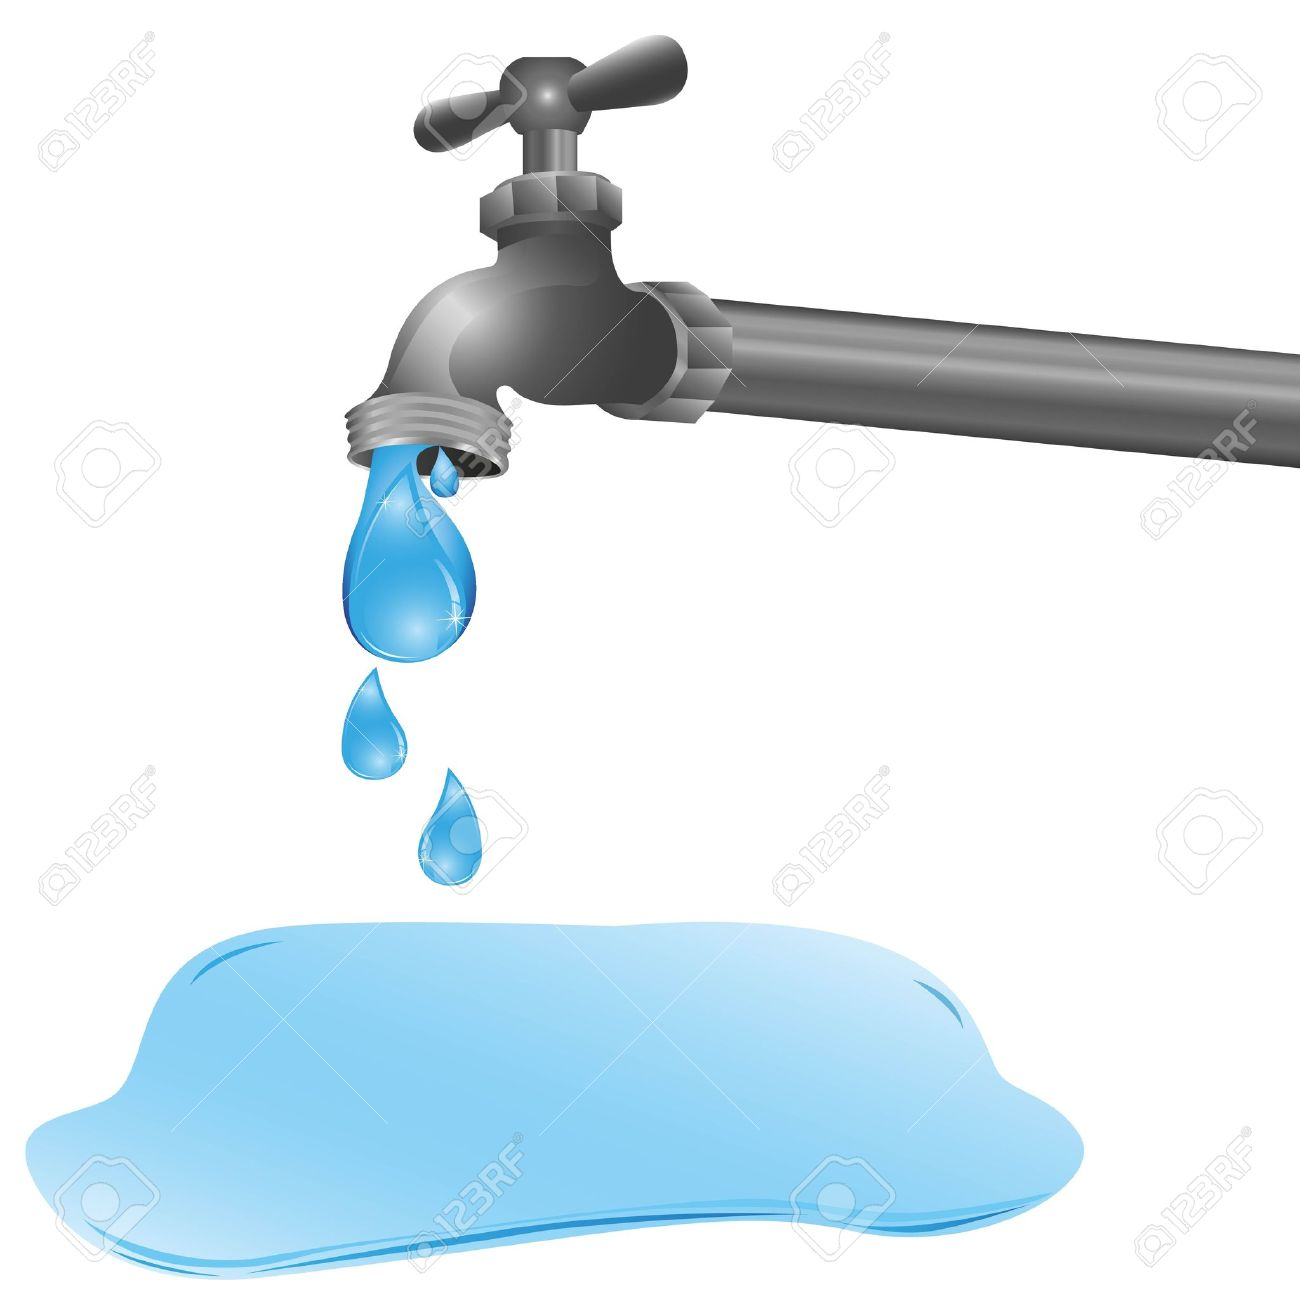 Tap Dripping Water Clip Art.